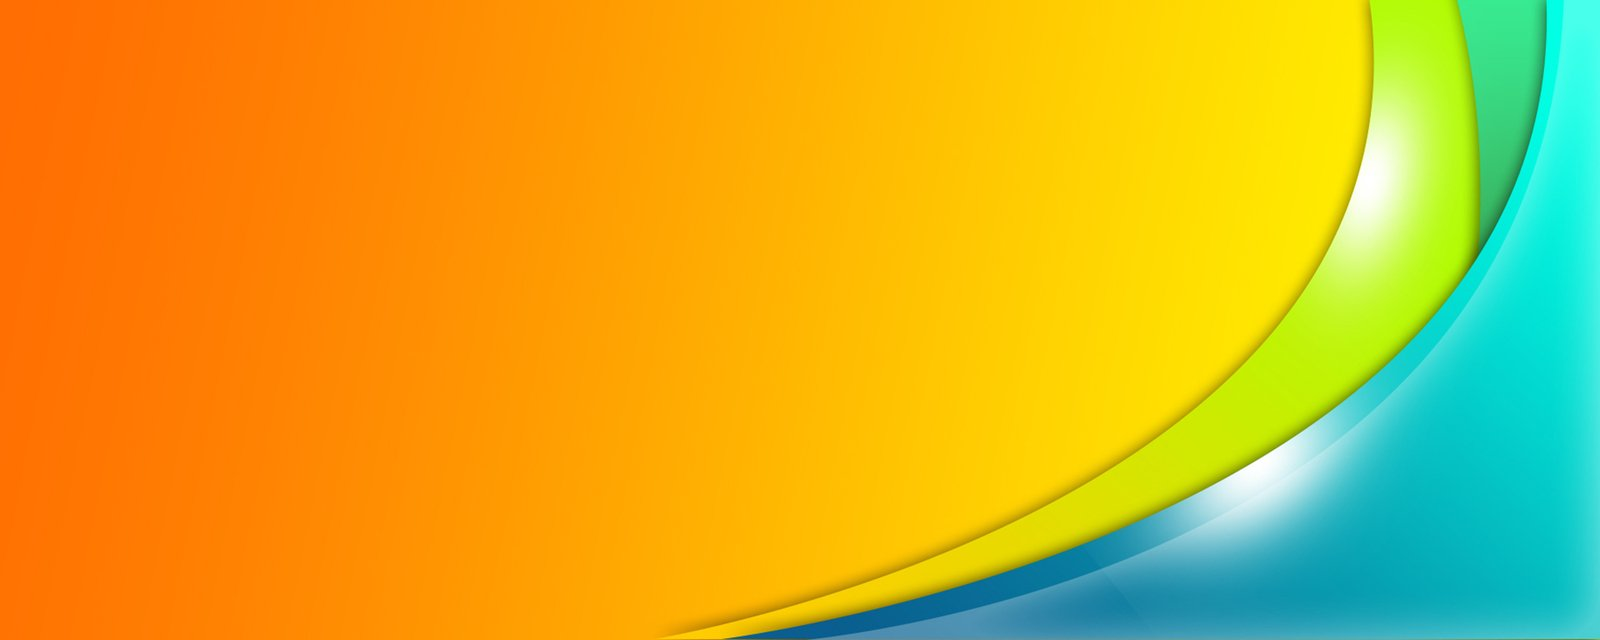 free free banner background stock photo freeimages com